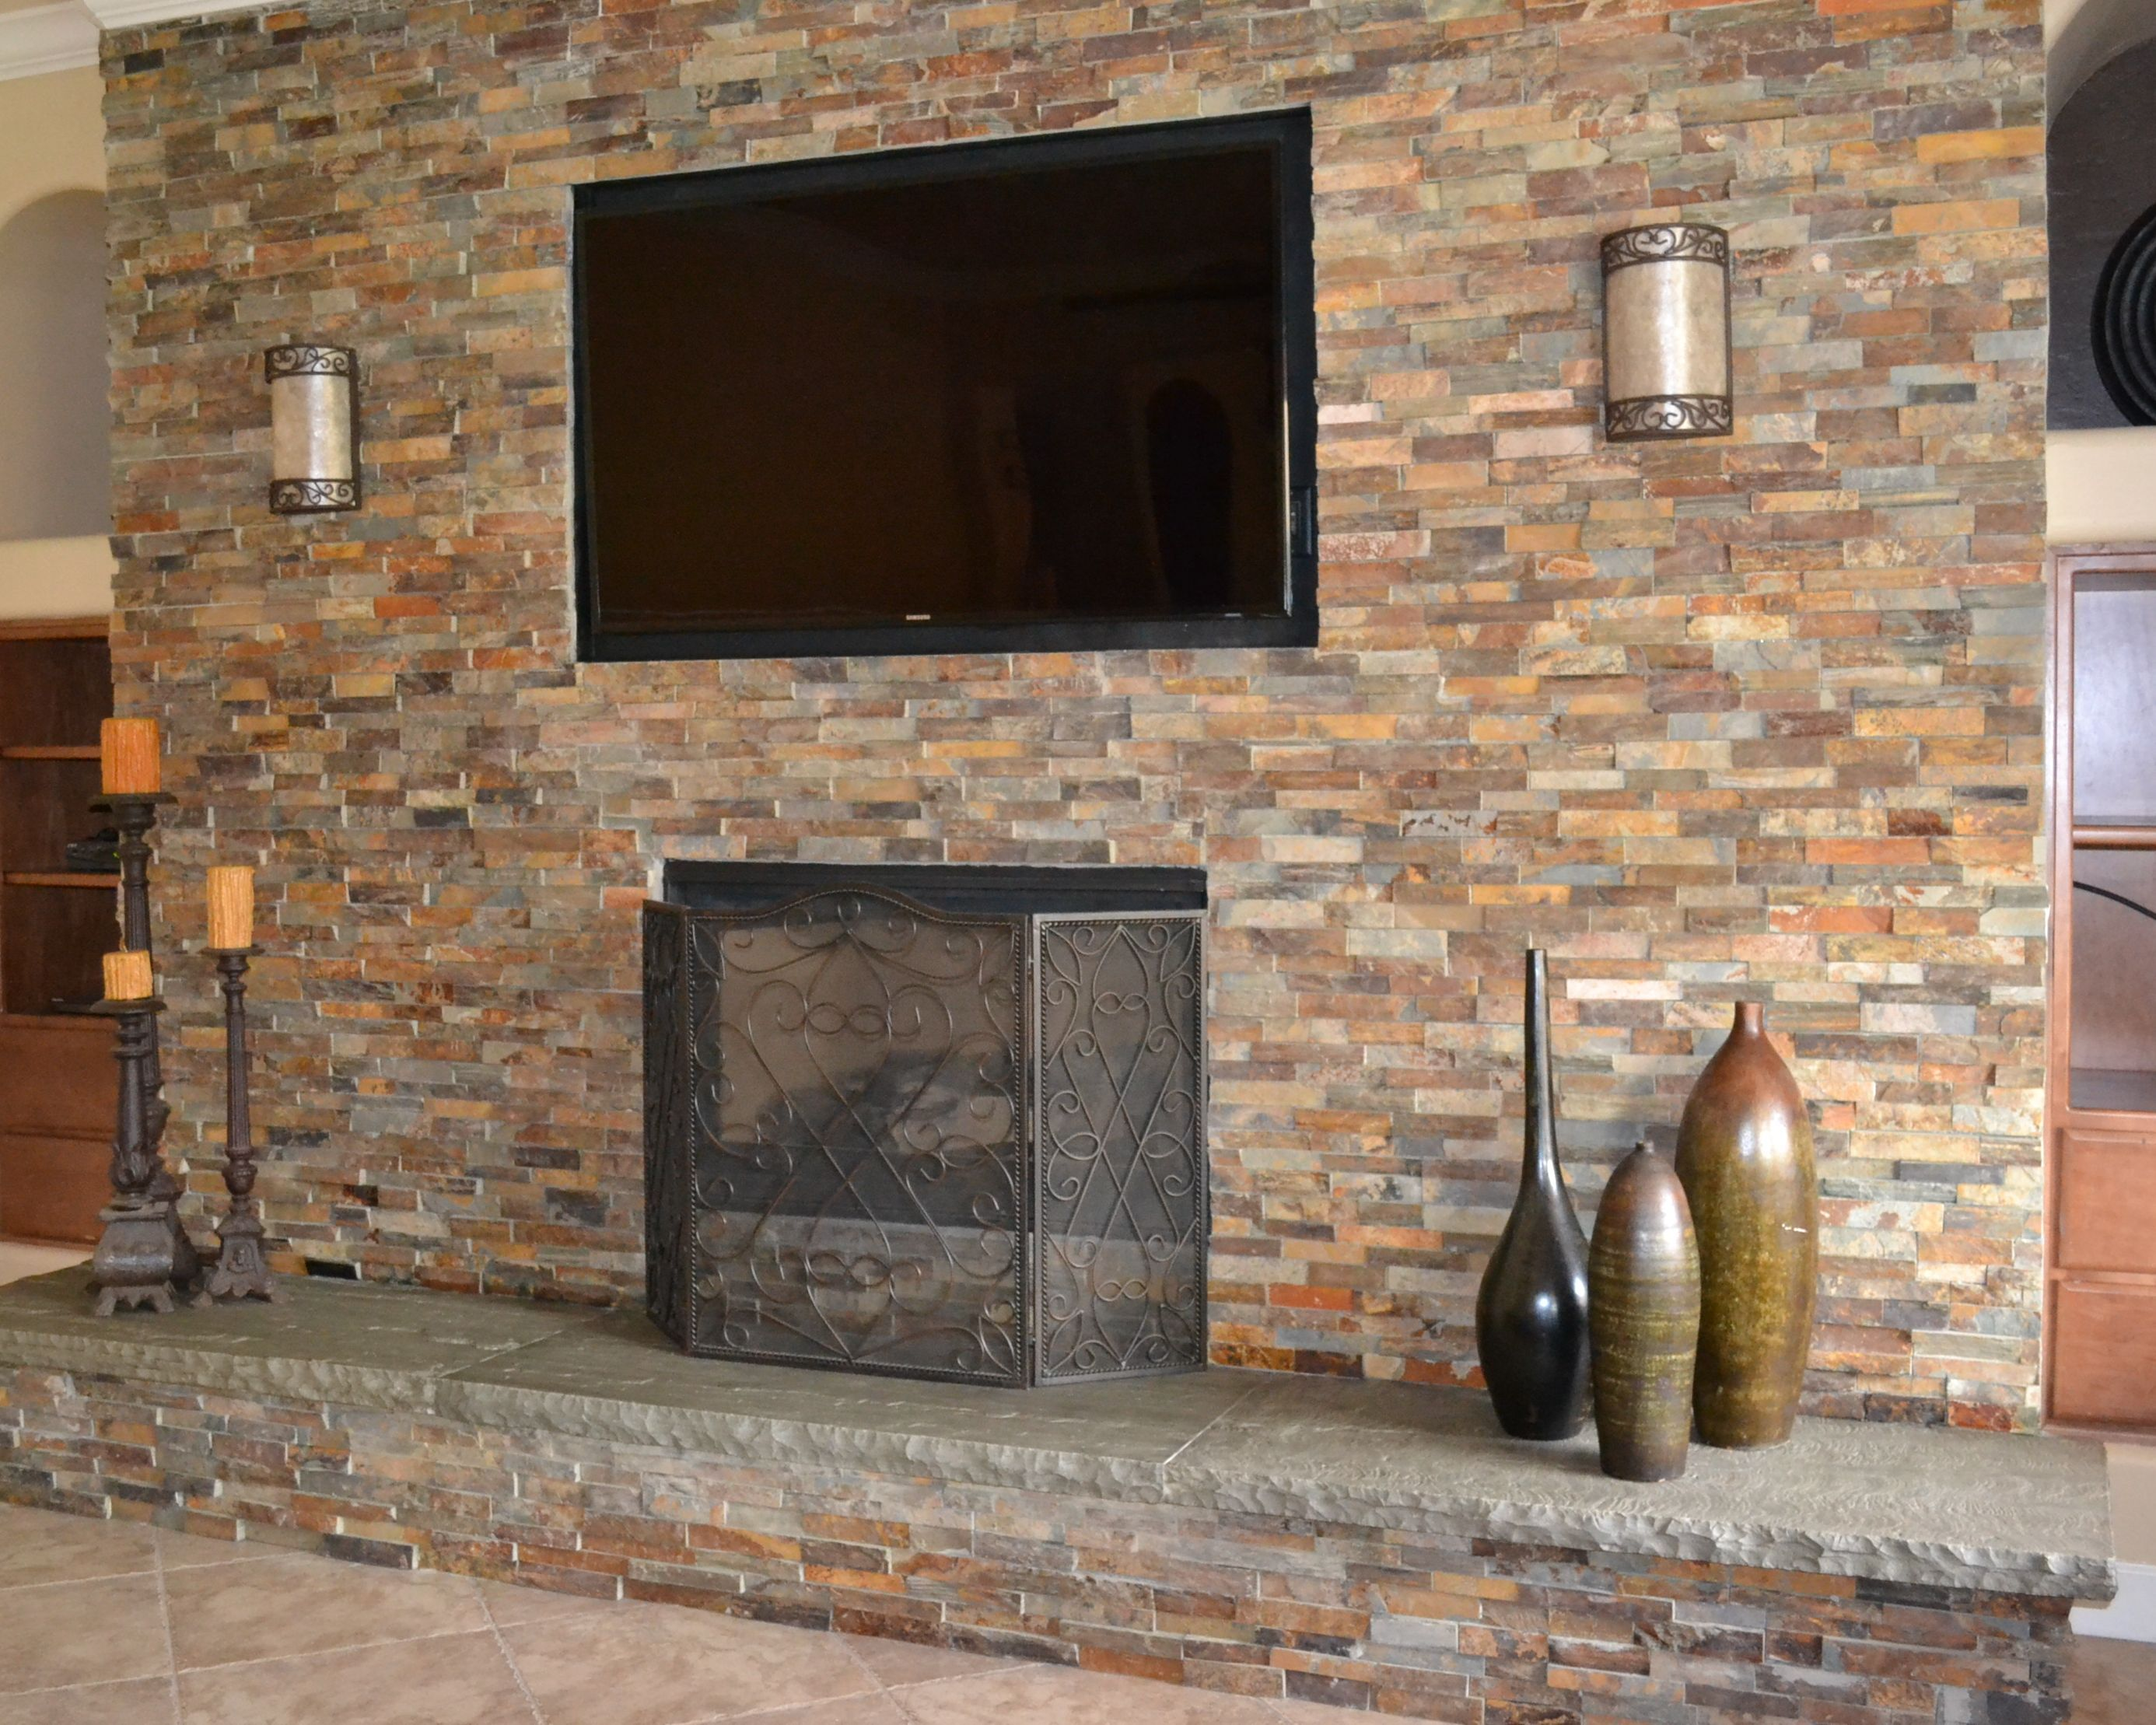 stunning stone veneer over drywall fireplace and diy installing stone veneer a fireplace - How To Stone Veneer Fireplace